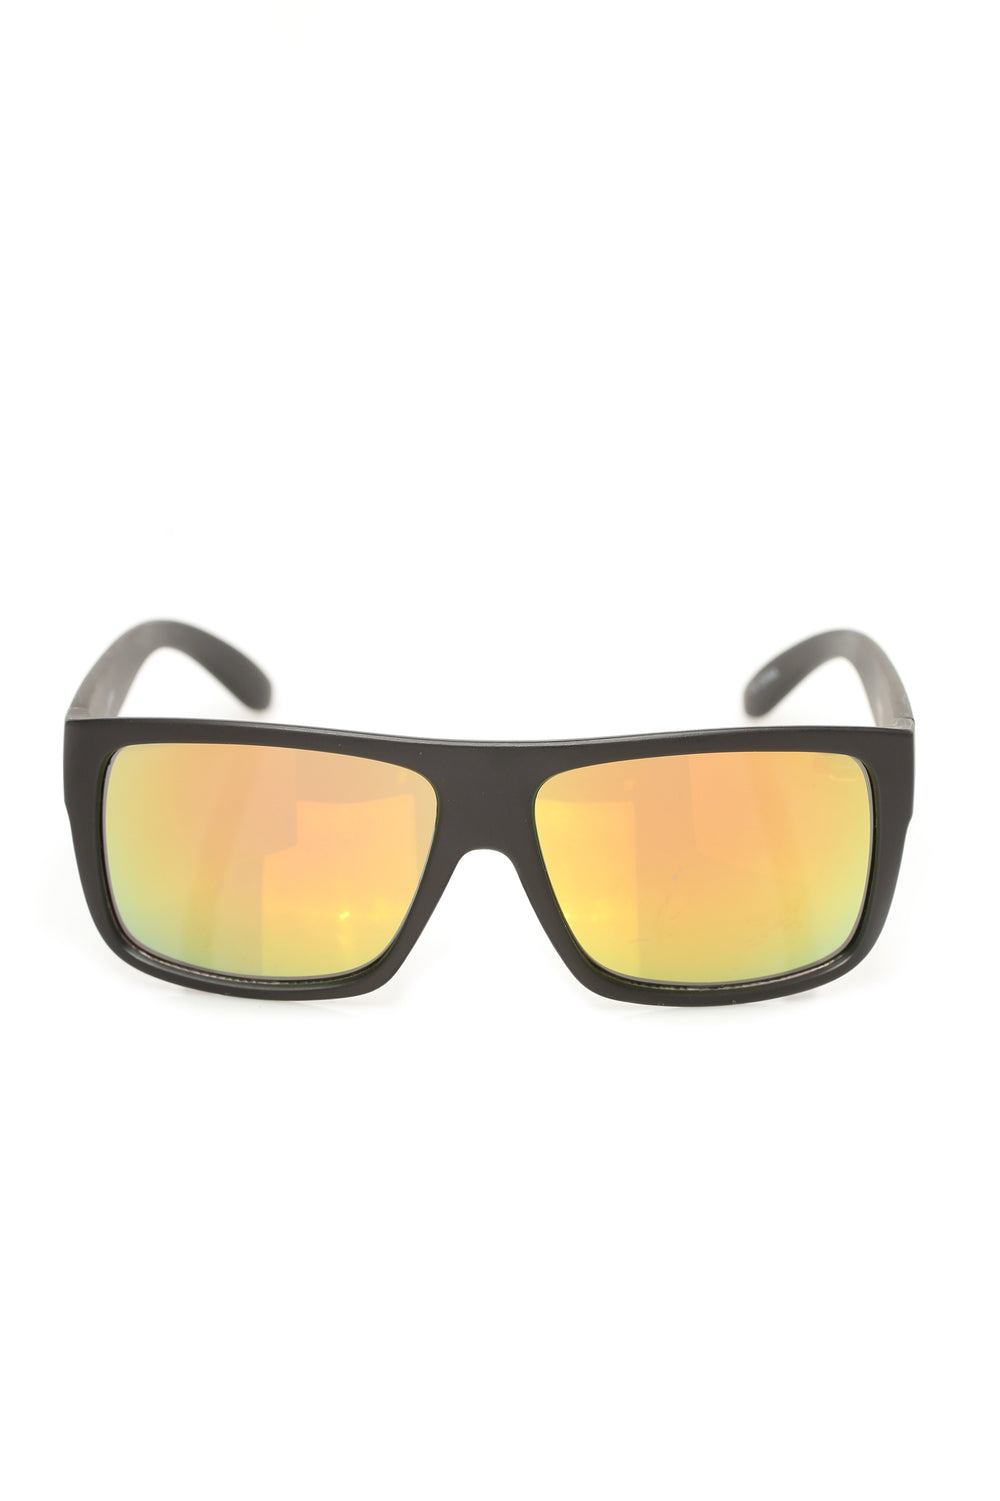 Brock Sunglasses - Black/Laser